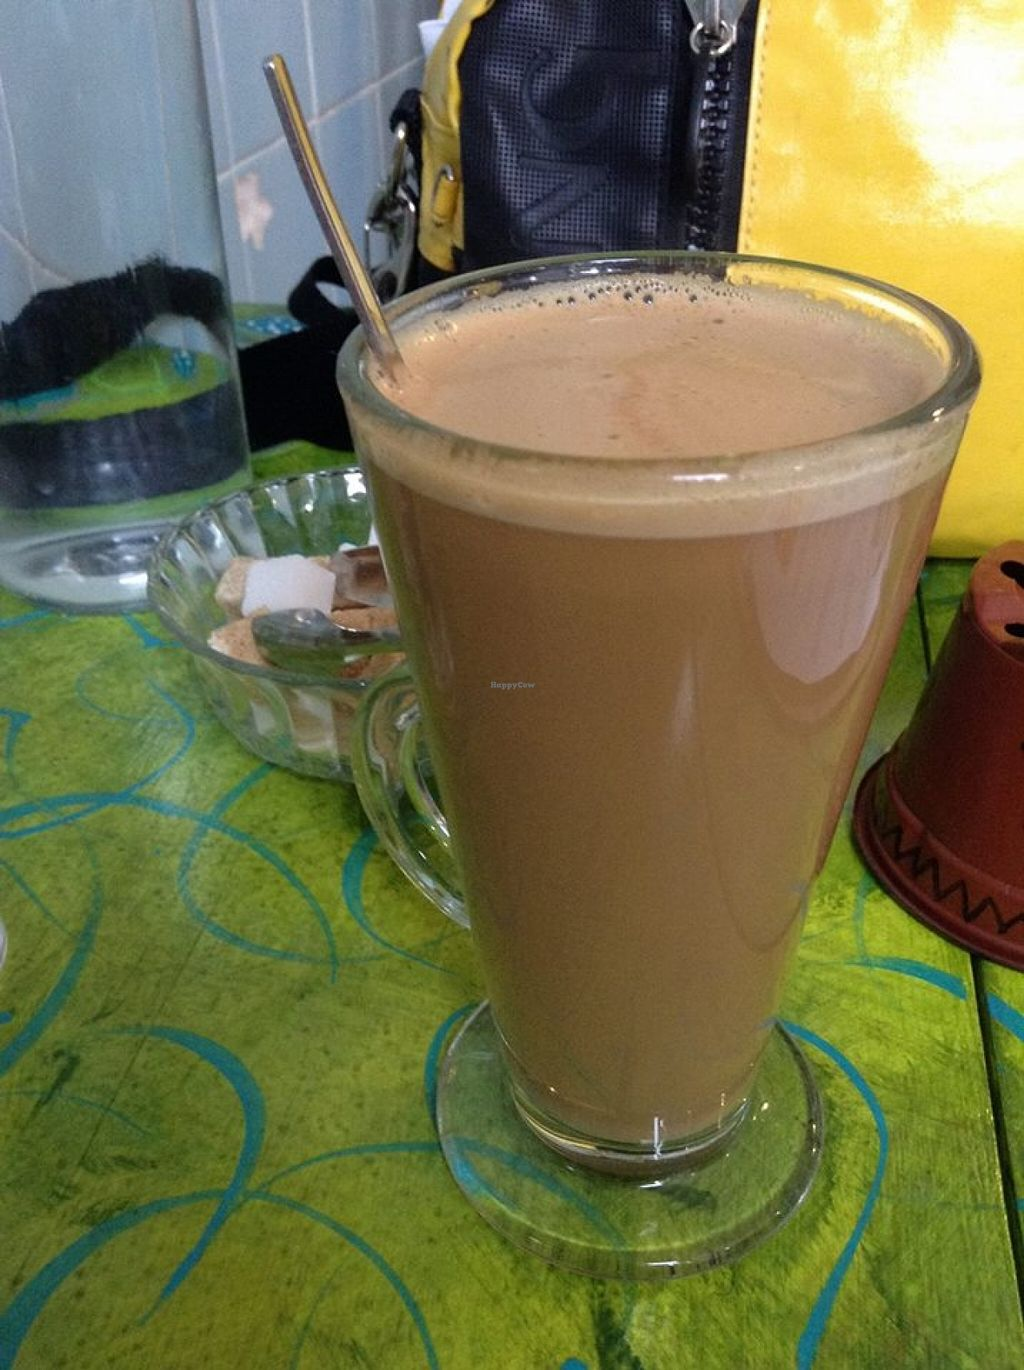 """Photo of Mudlarks Garden Cafe  by <a href=""""/members/profile/marylily2"""">marylily2</a> <br/>Soya latte.  <br/> January 29, 2016  - <a href='/contact/abuse/image/52289/134121'>Report</a>"""